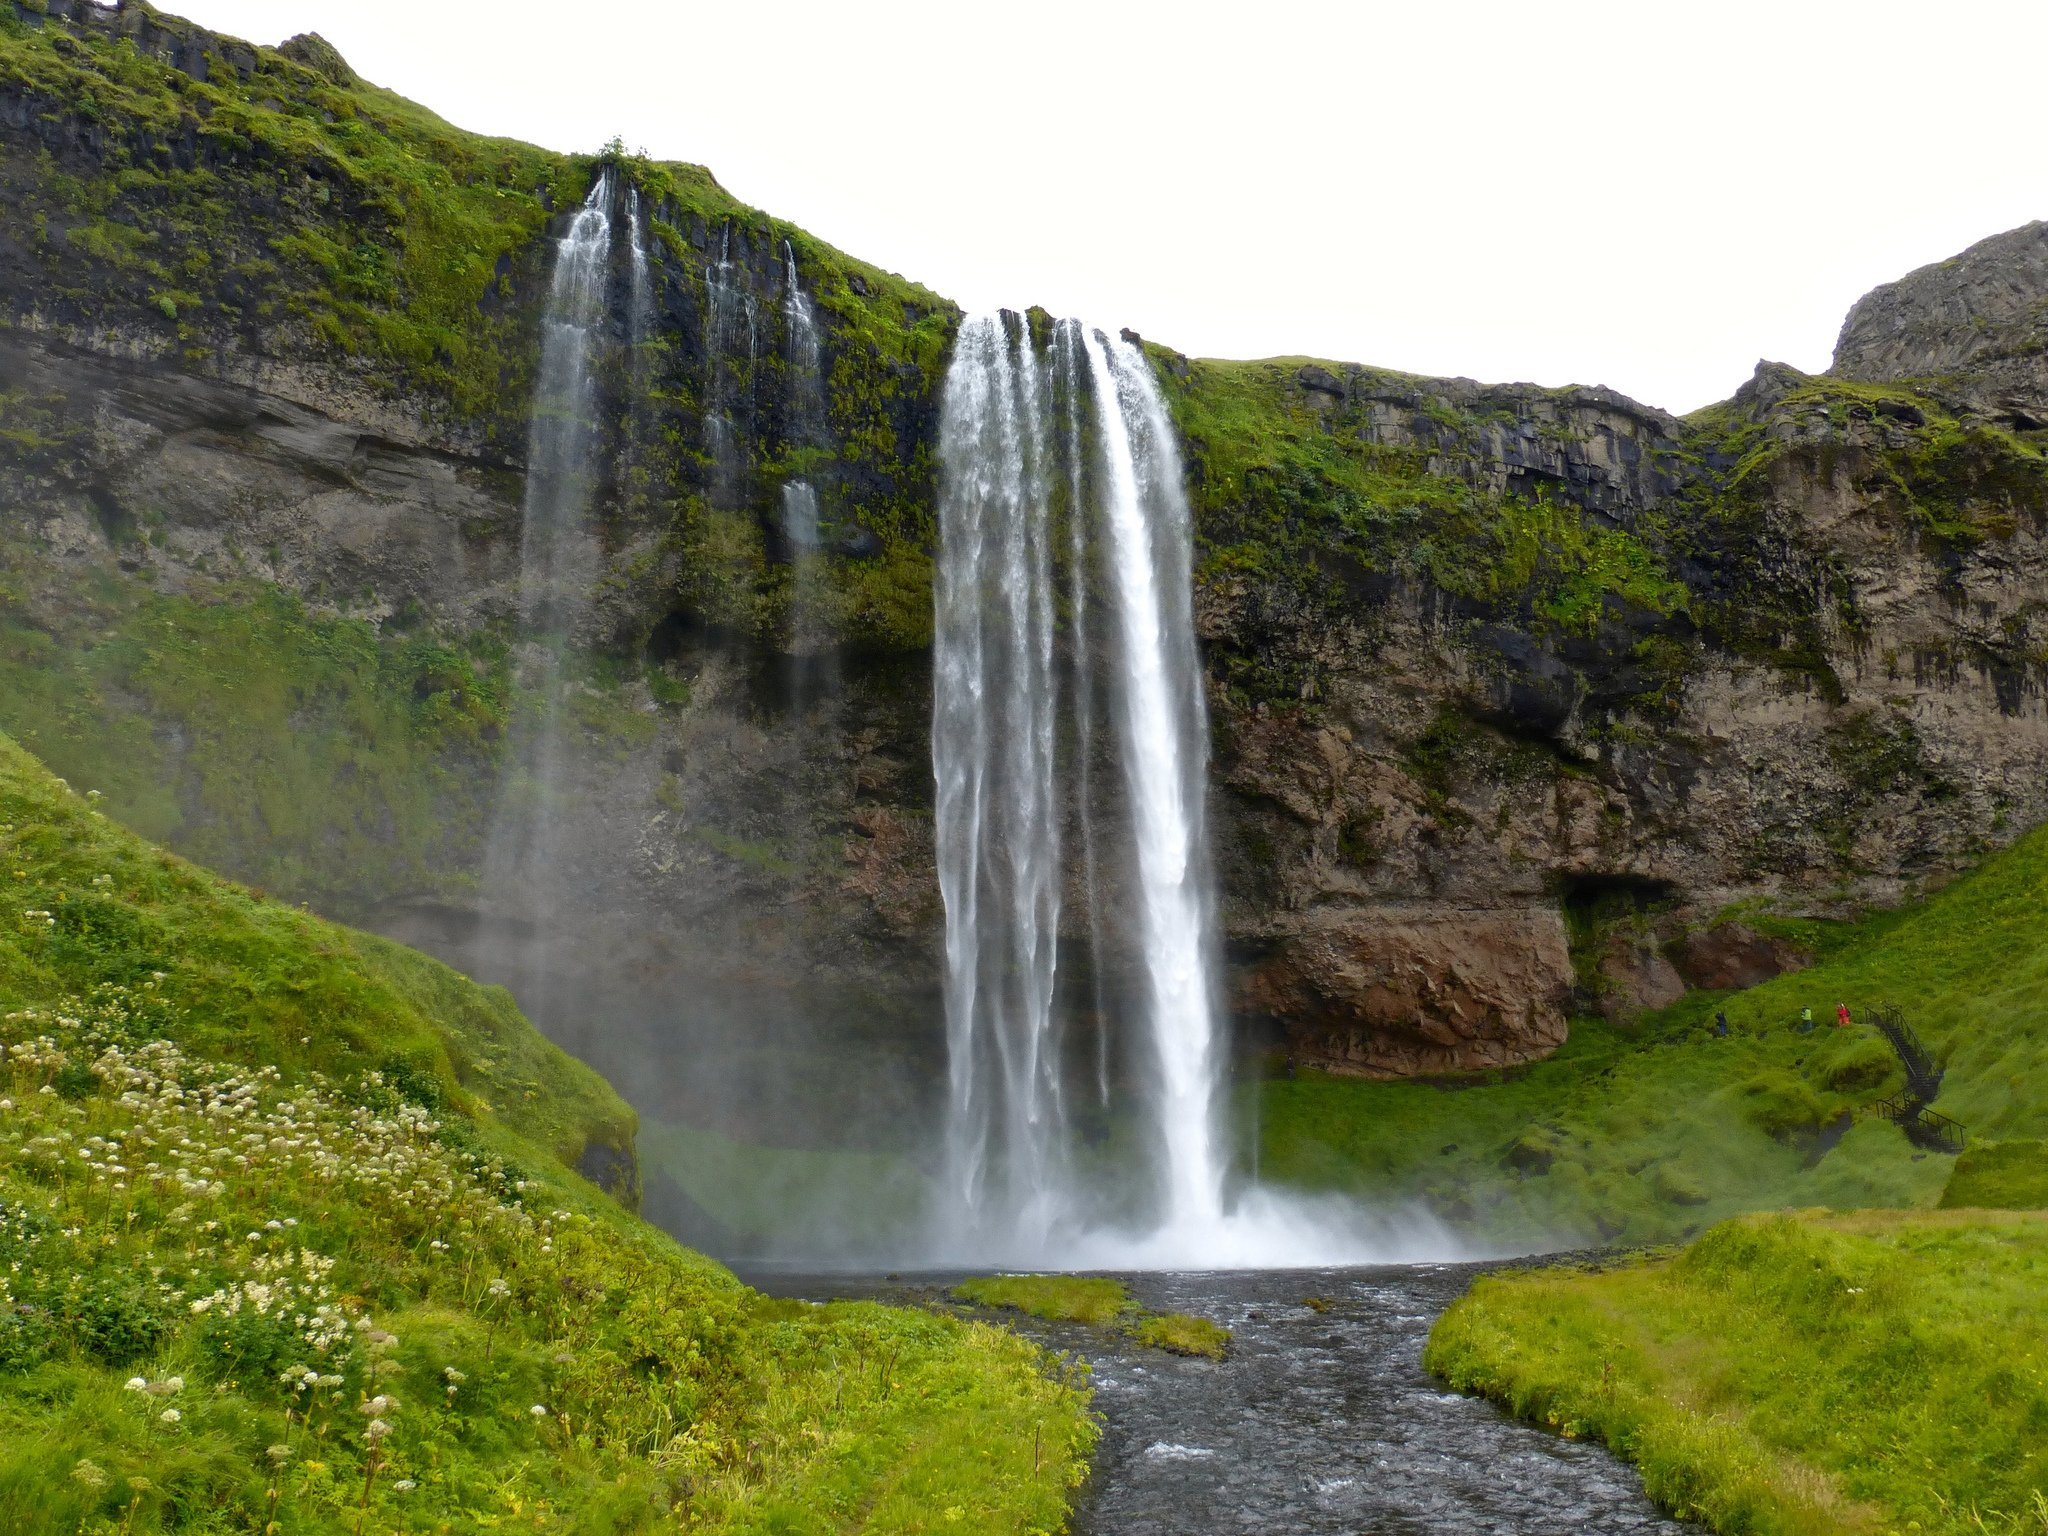 Seljalandsfoss Waterfall by Claire Cox (CC)